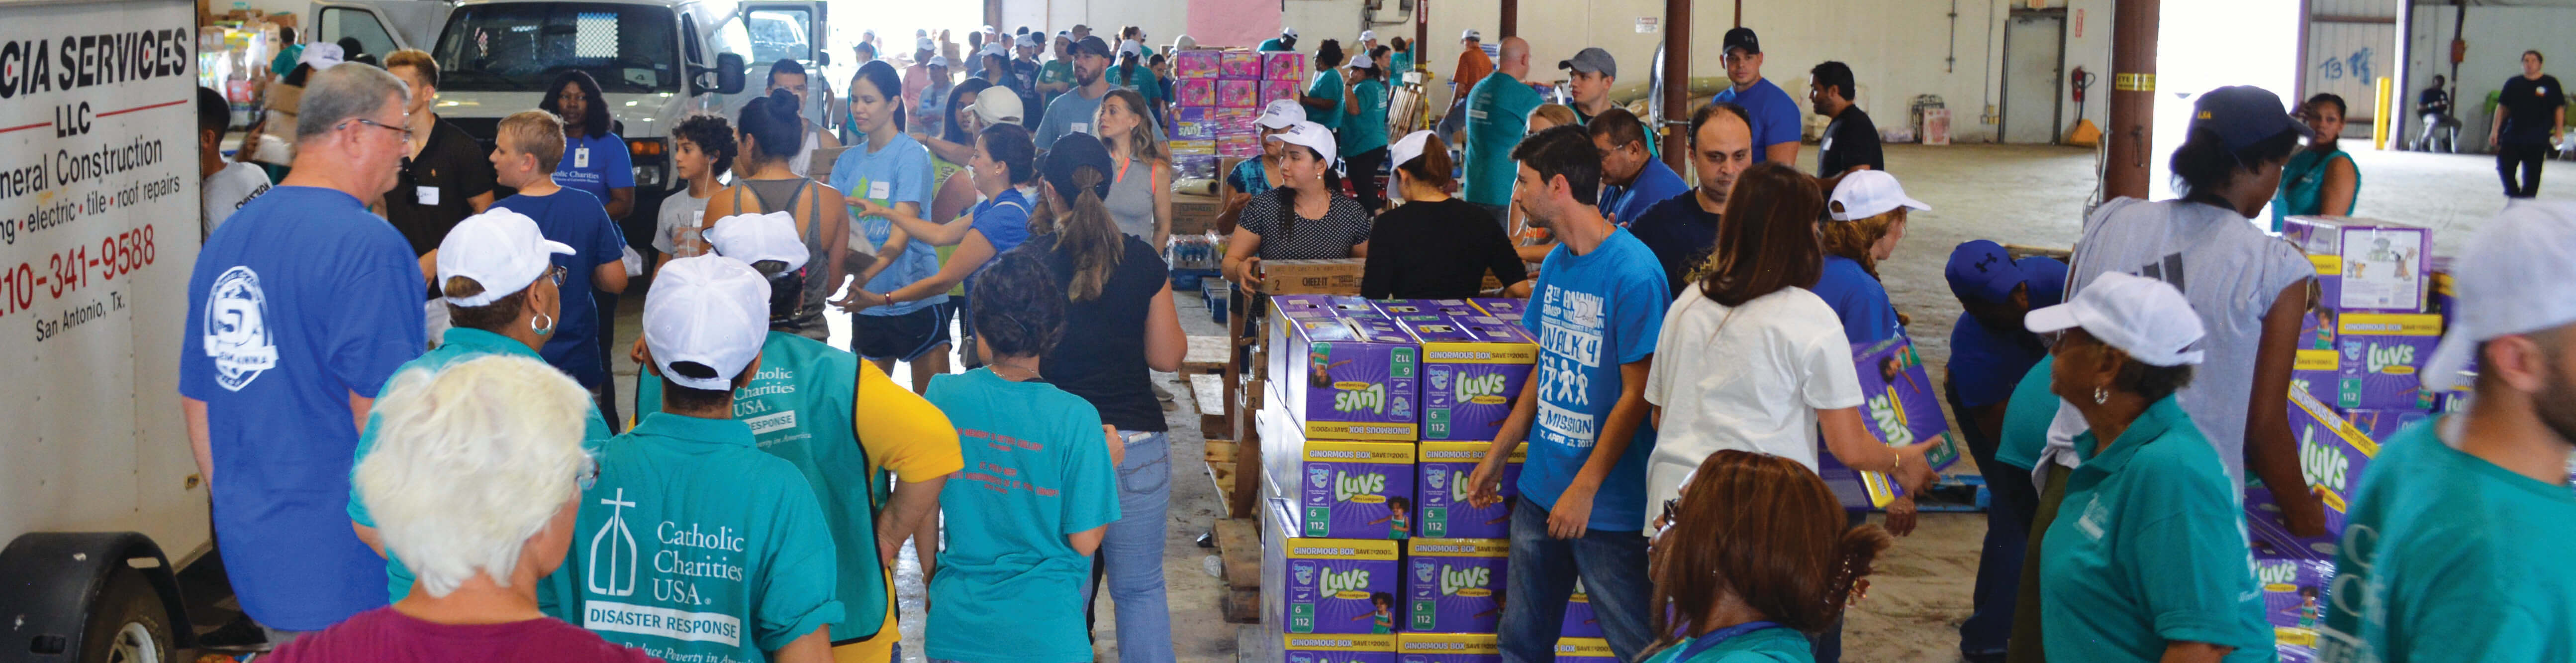 Catholic Charities is the leader in long-term disaster case management.